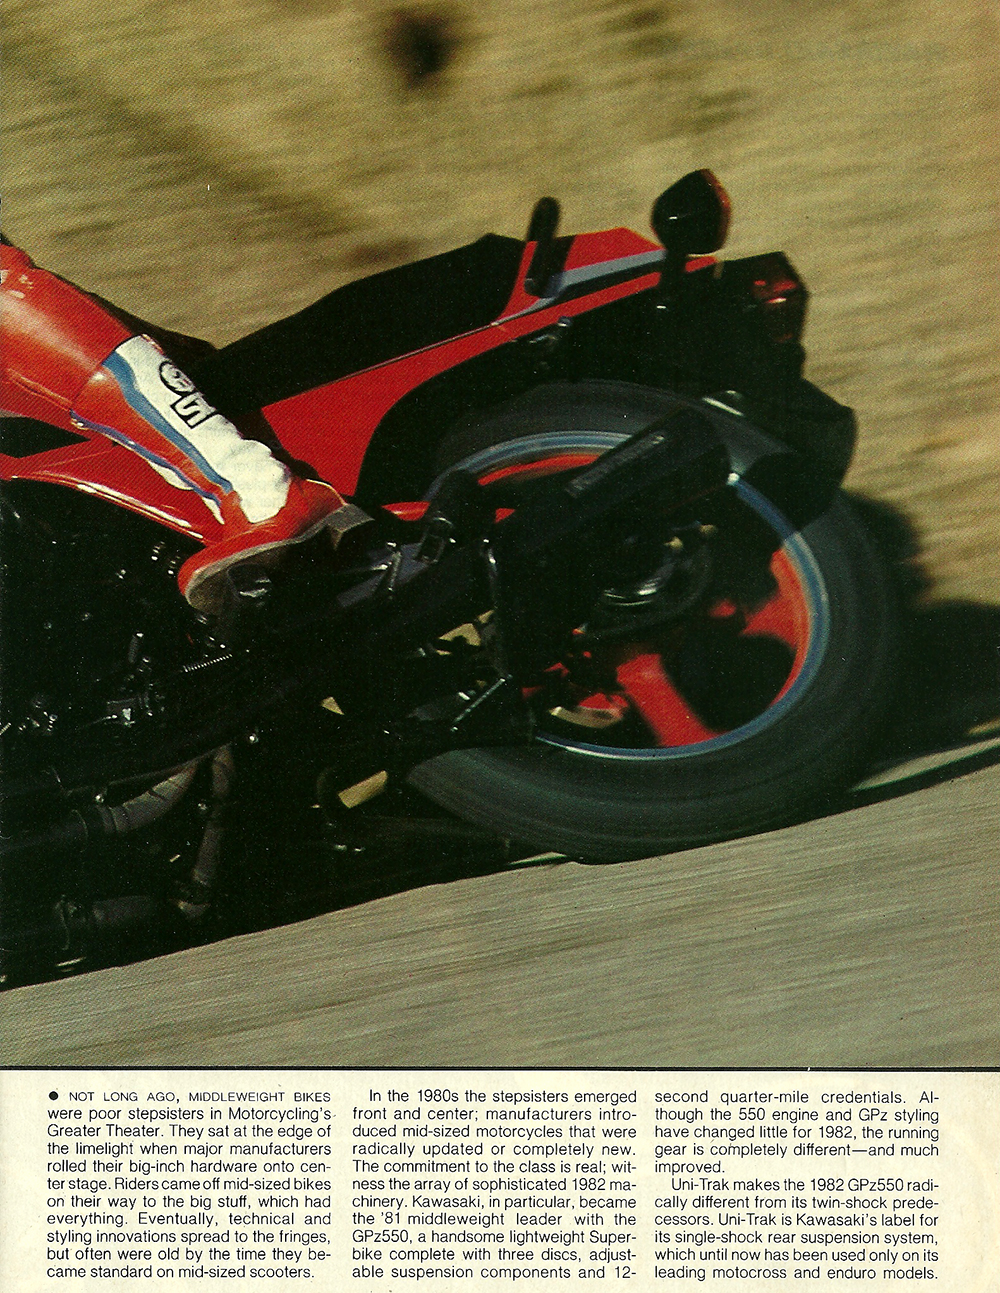 1982 Kawasaki GPz550 road test 02.jpg